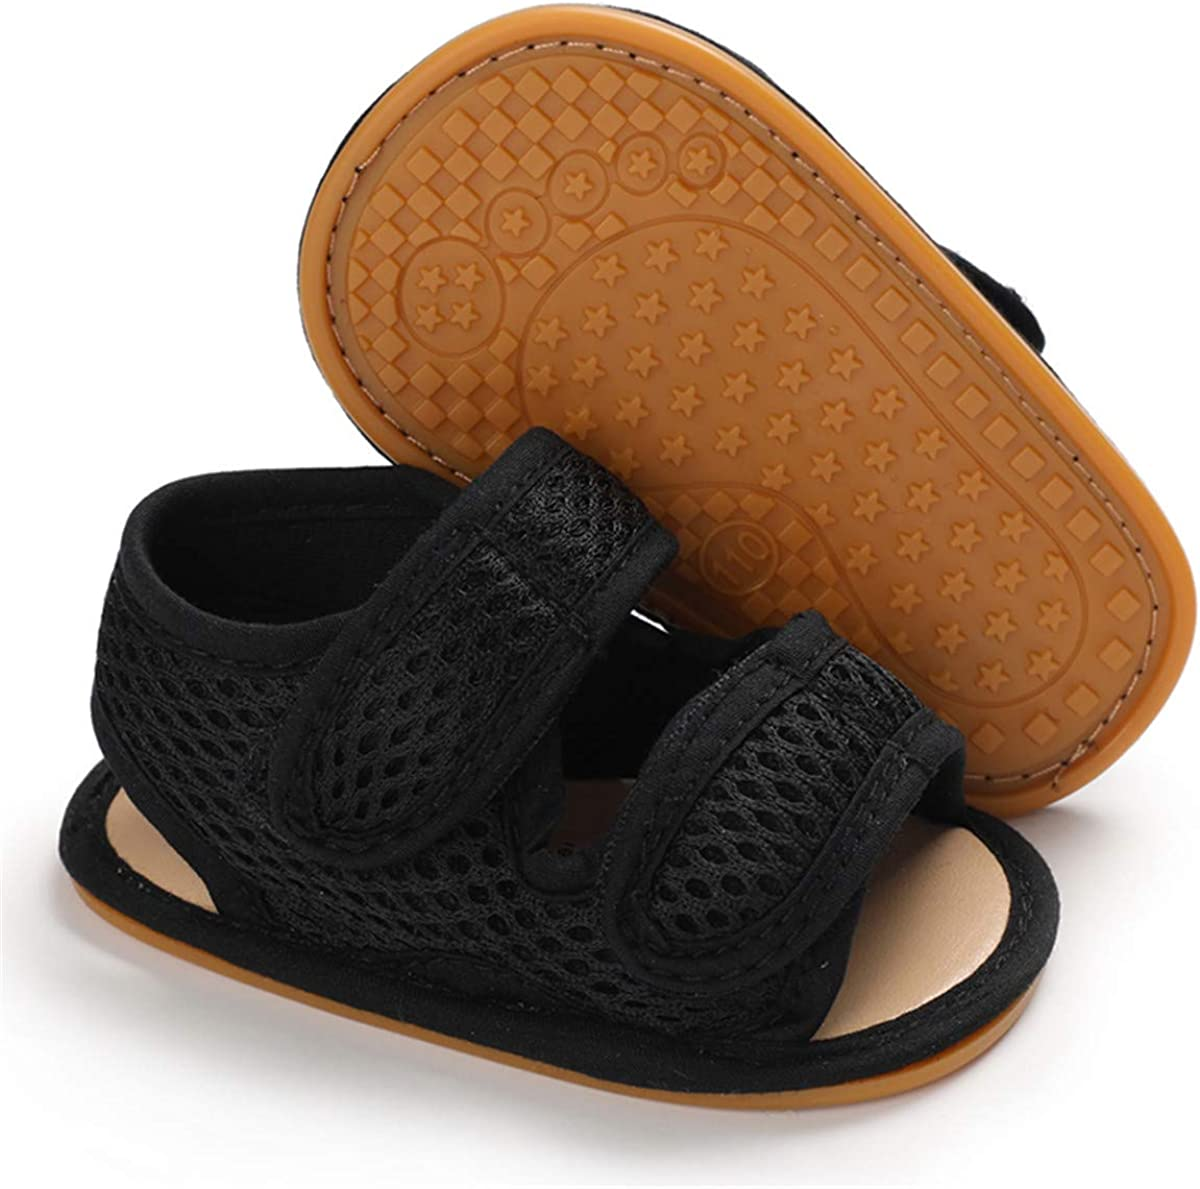 COSANKIM Infant Baby Boys Girls Summer Sandals Non Slip Soft Sole Toddler First Walker Crib Shoes(0-18 Months)